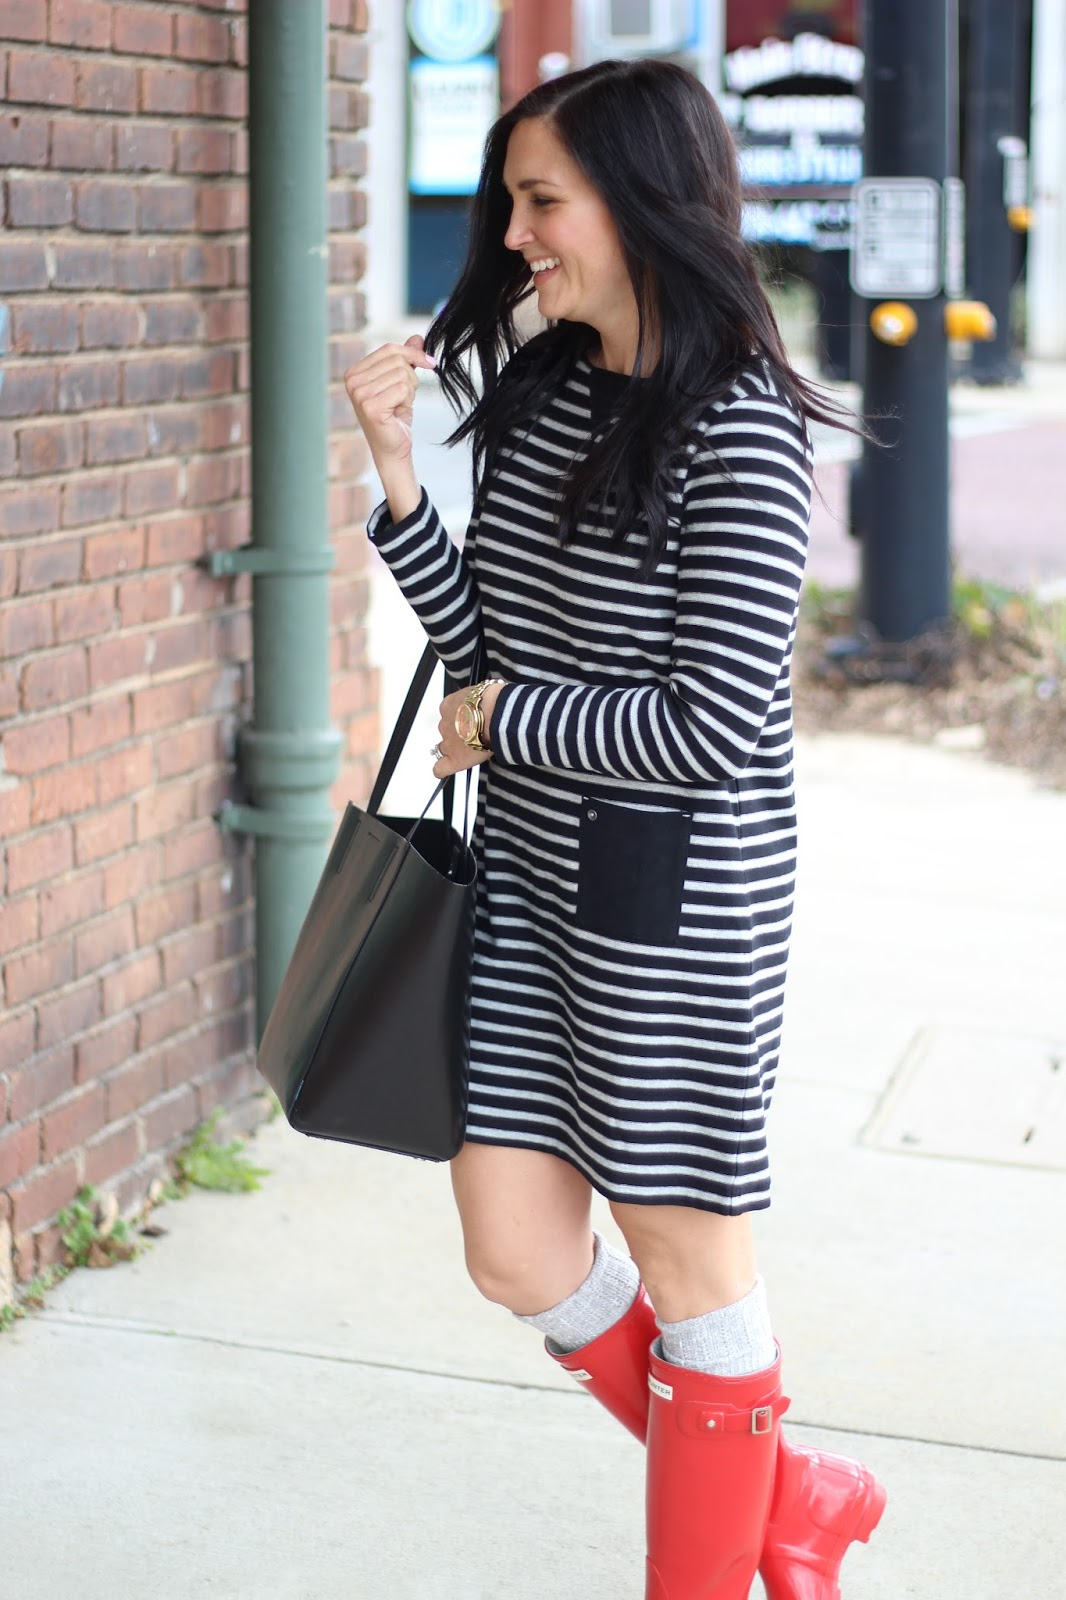 #JJillStyle Black and grey stipe dress